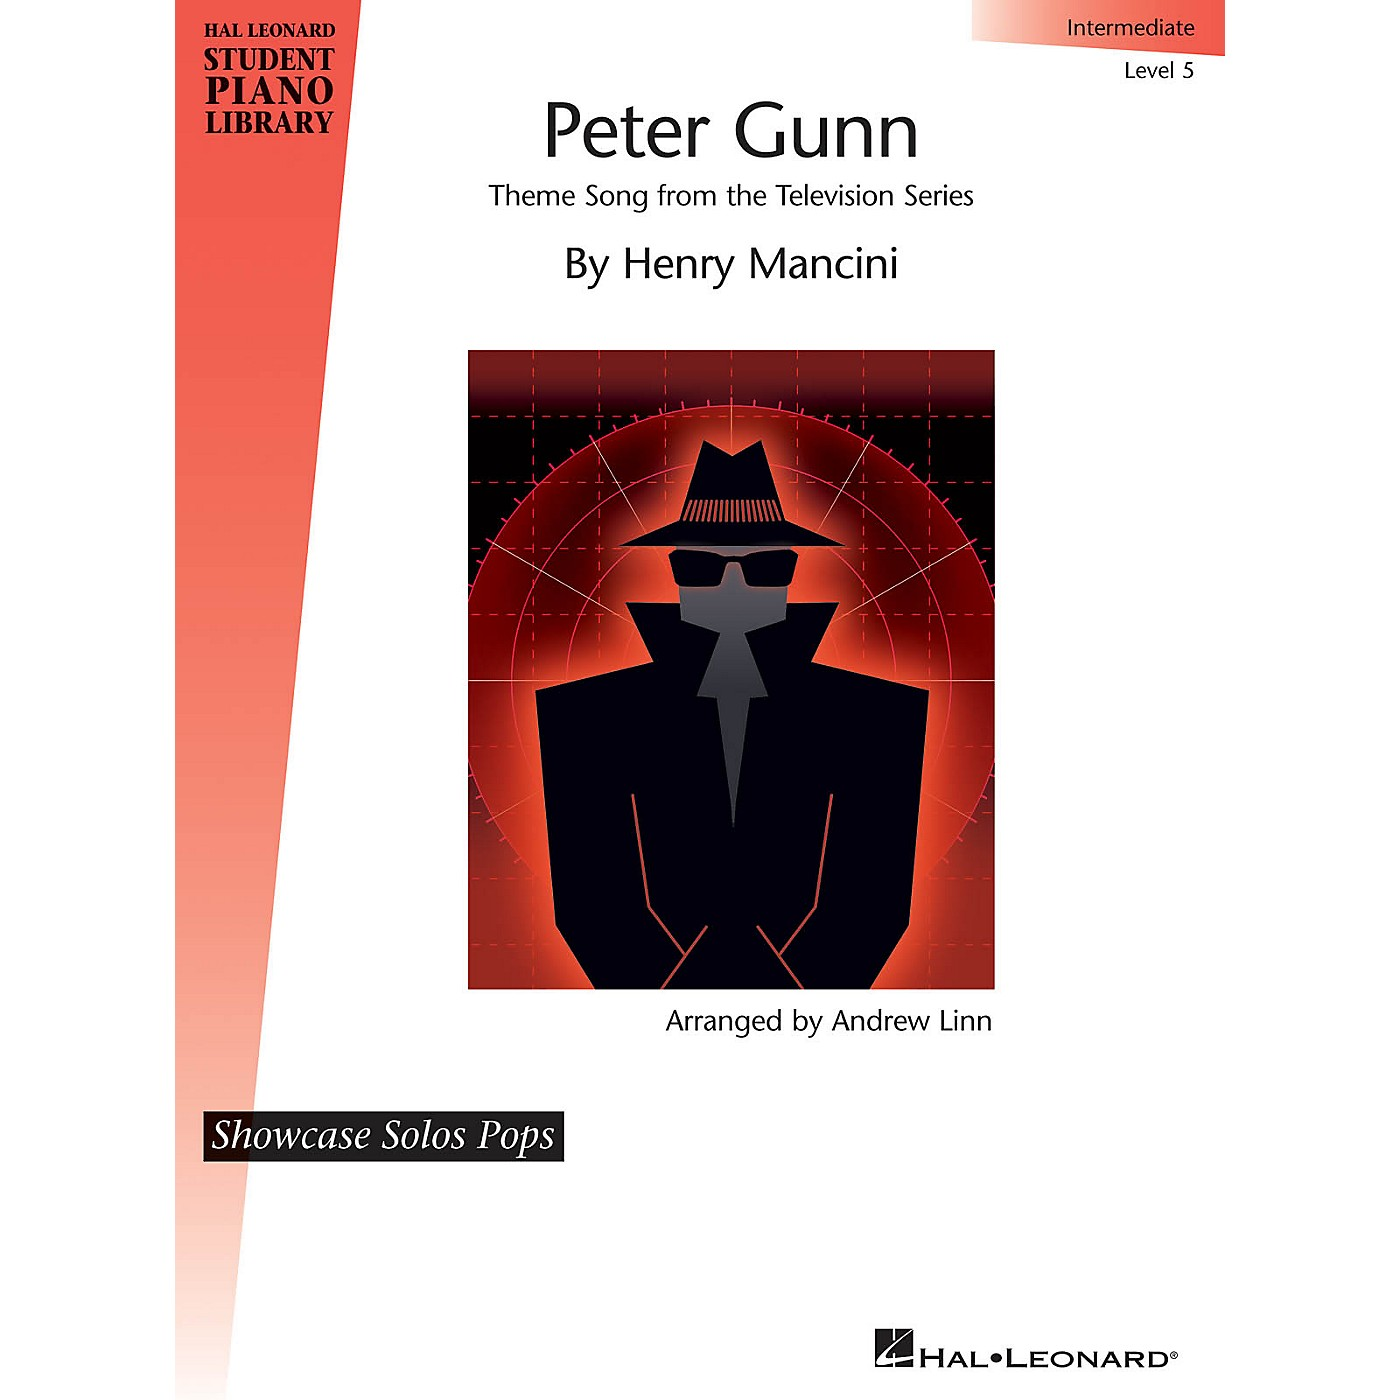 Hal Leonard Peter Gunn (Theme Song from the Television Series) Piano Library Series (Level Late Inter/Level 5) thumbnail